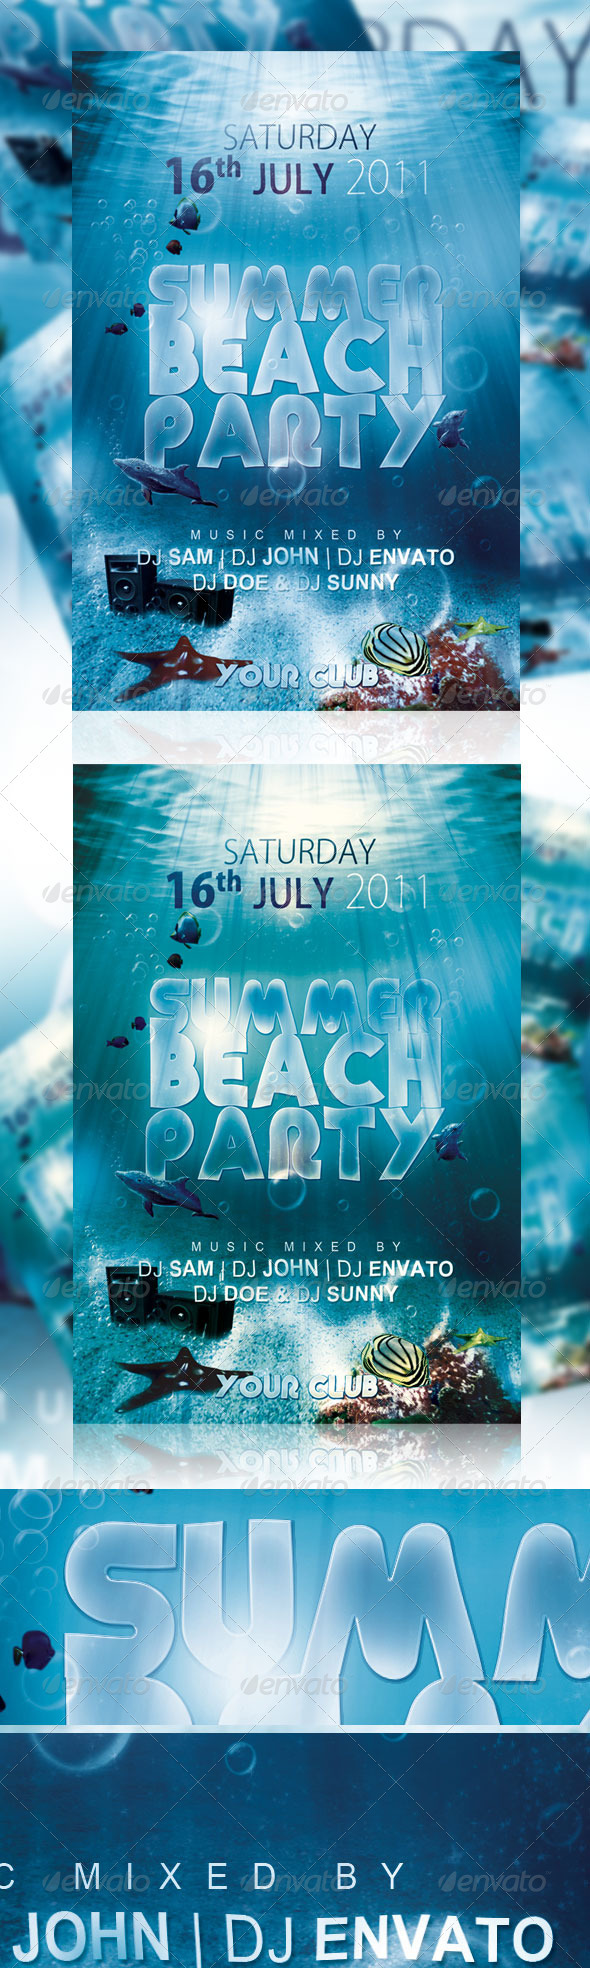 Summer Beach Party Flyer Ver 1